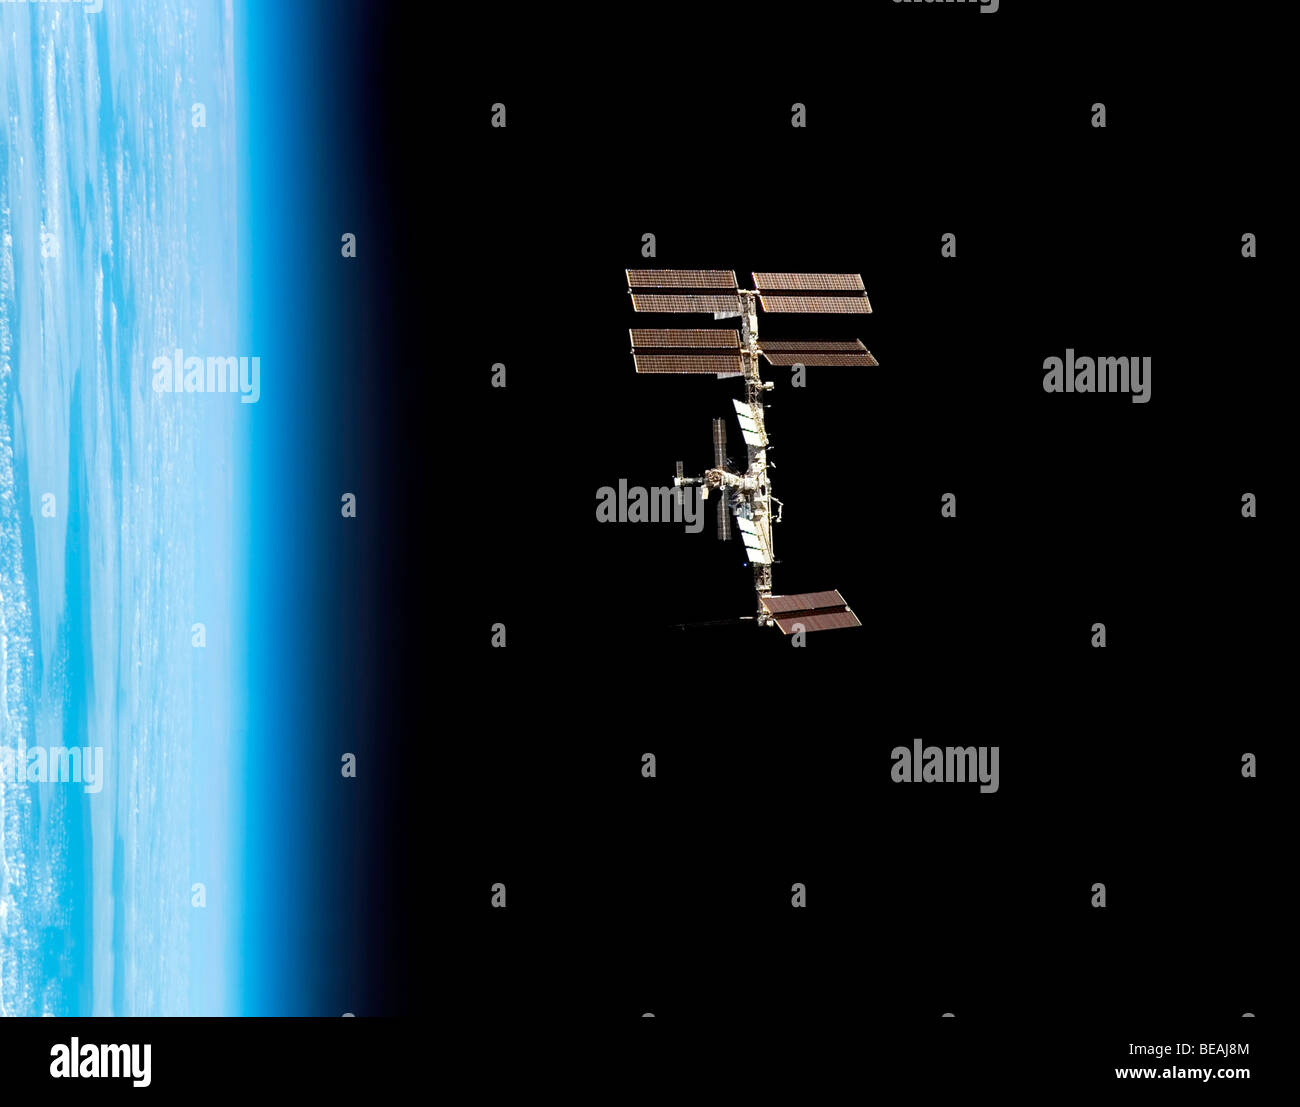 The ISS International Space Station with earth and atmoshere beyond. Optimised version of an original NASA image. - Stock Image